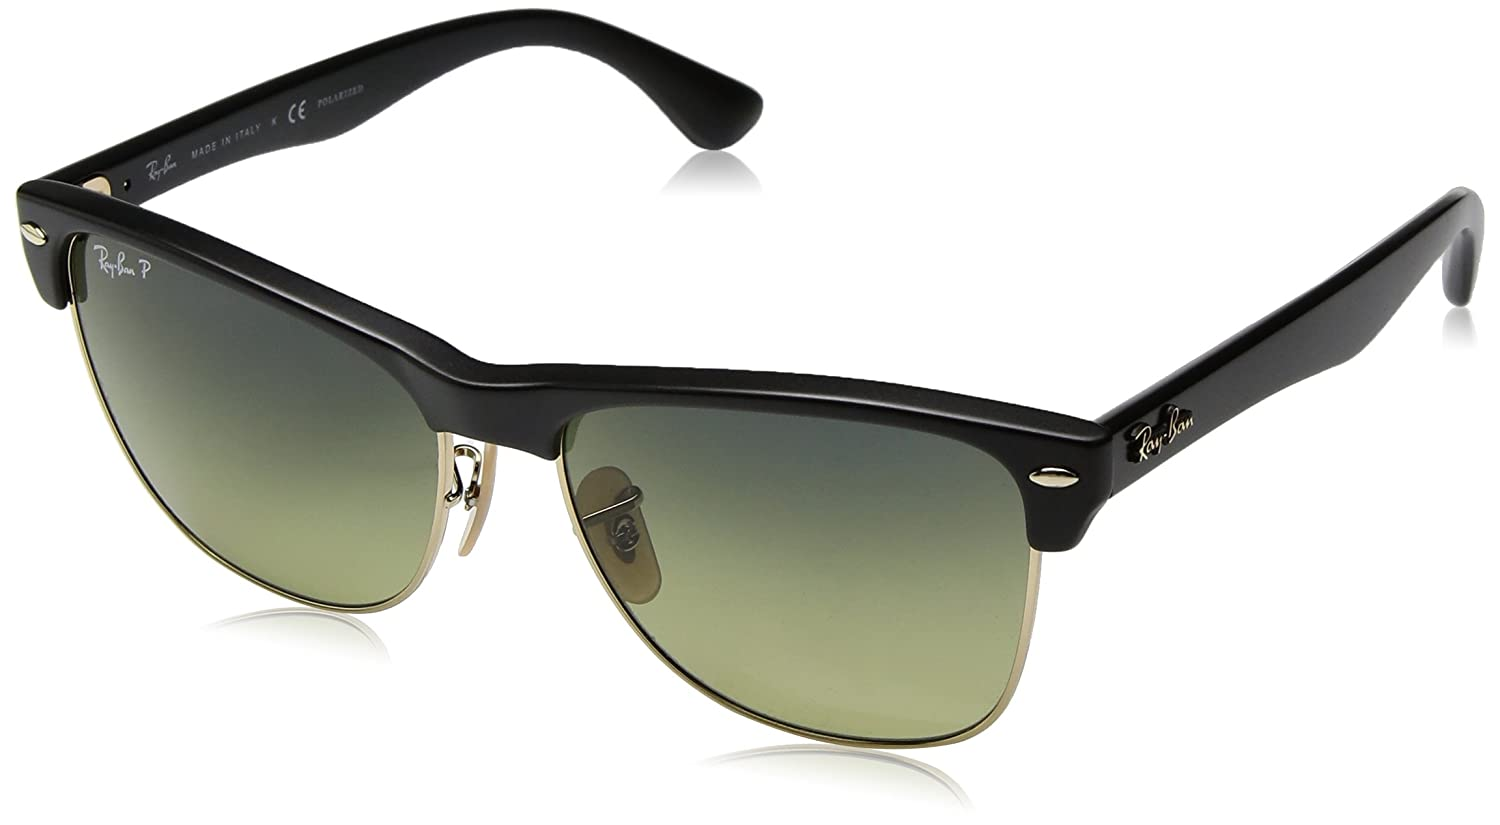 2ec95862cdd92 ... free shipping amazon ray ban mens clubmaster oversized polarized square  sunglasses demi gloss black 57 mm